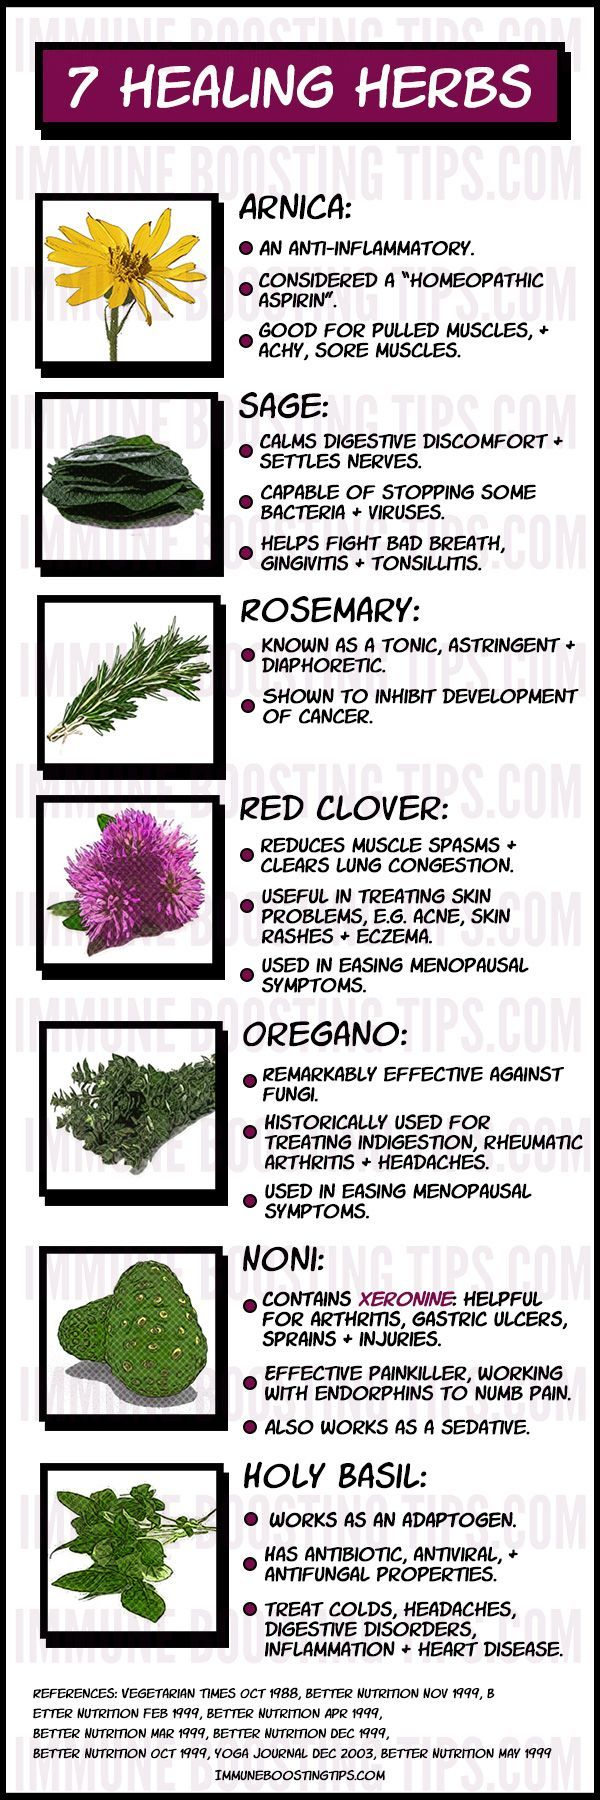 Medicinal Herbs for healing: some the best medicinal plants for healing and boosting immune system health. #healingherbs #medicinalherbs #medicinalplants